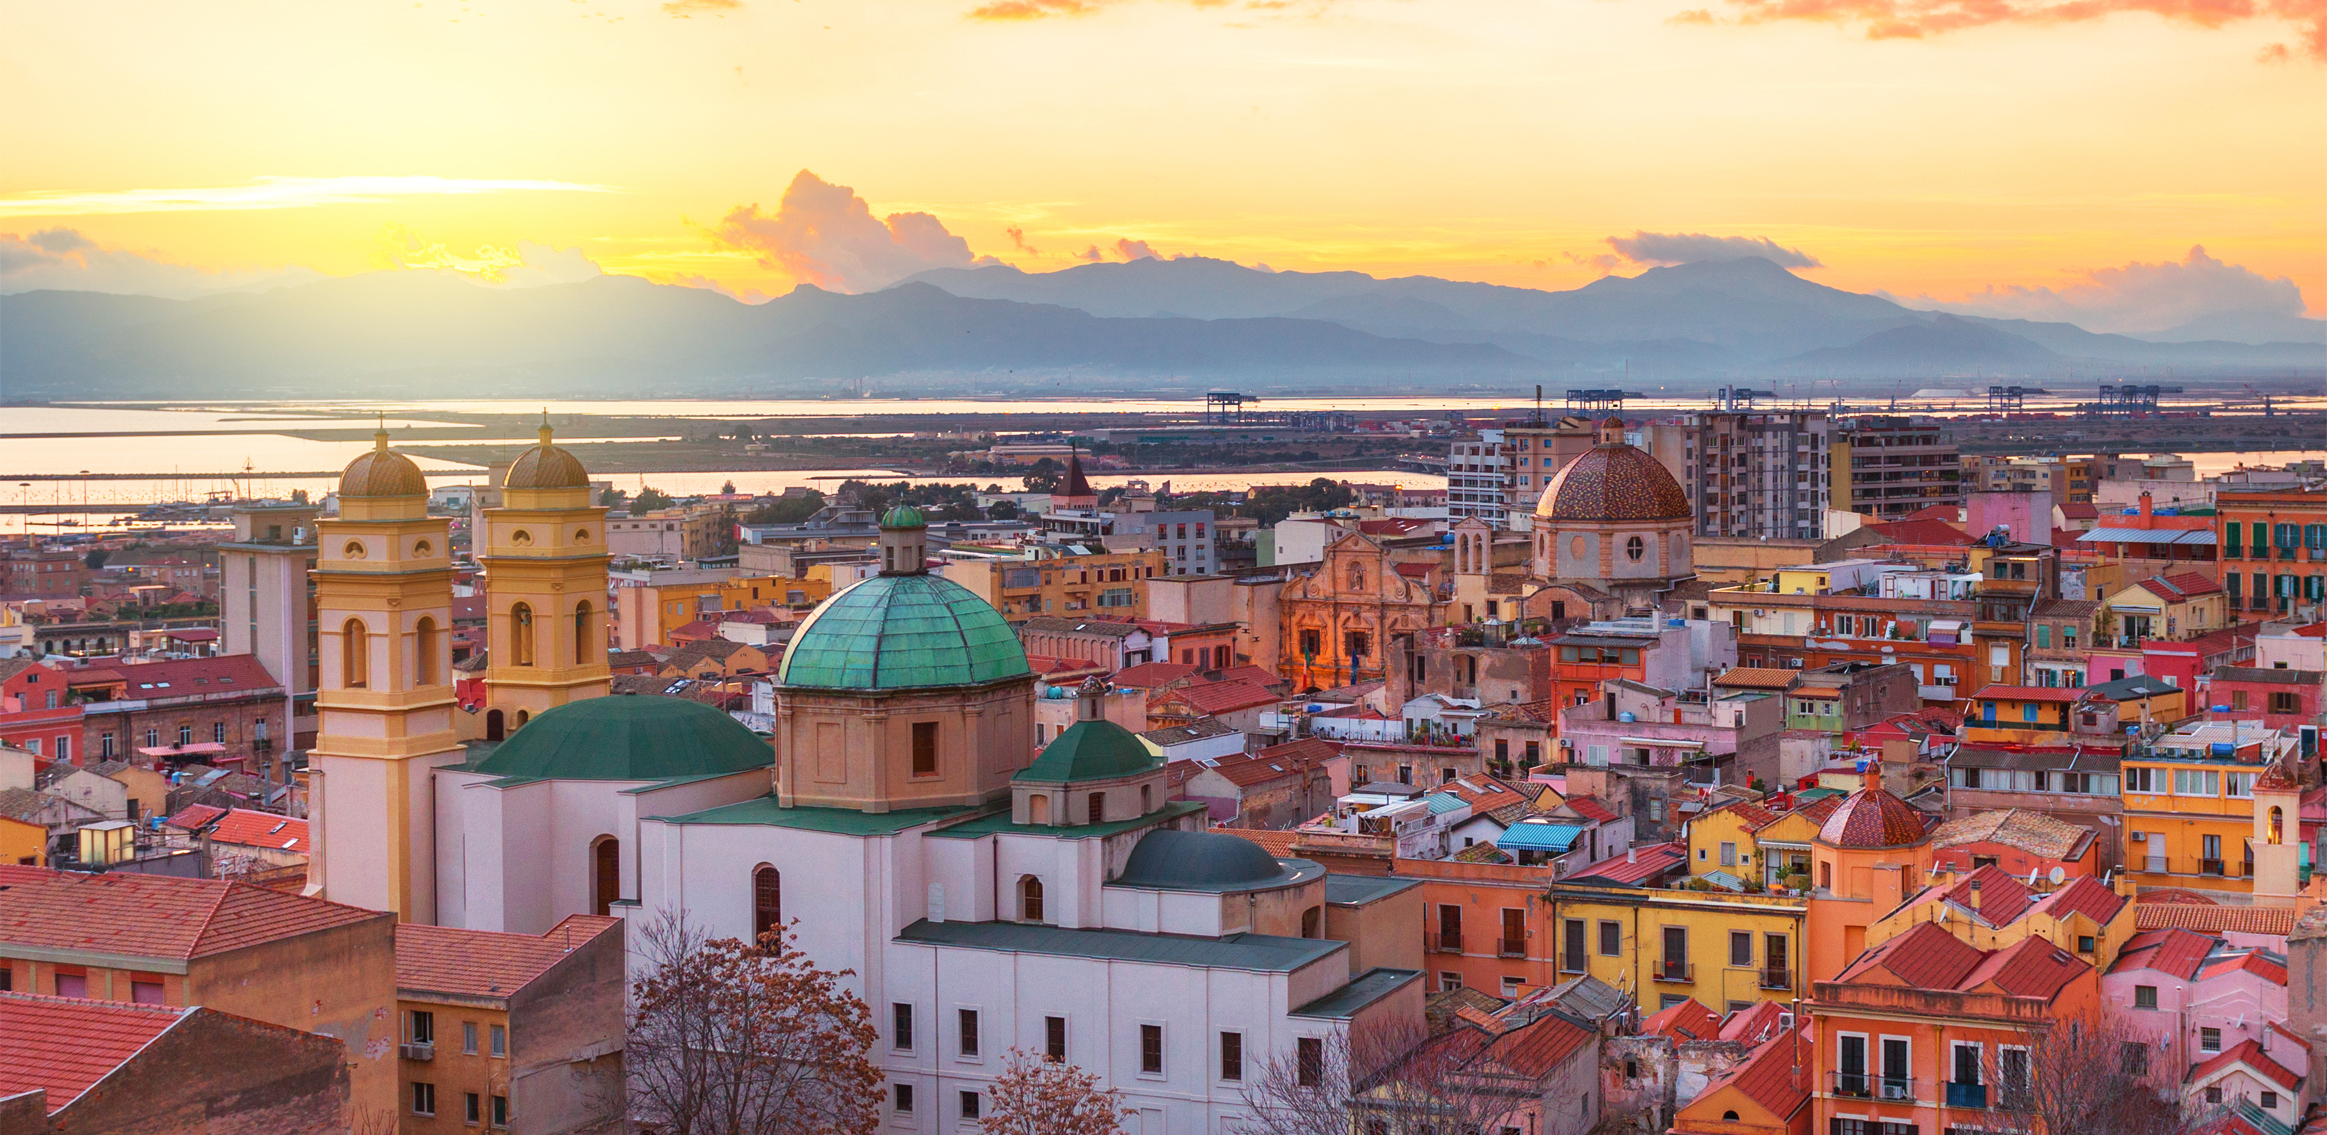 Panoramic view of Cagliari at sunset